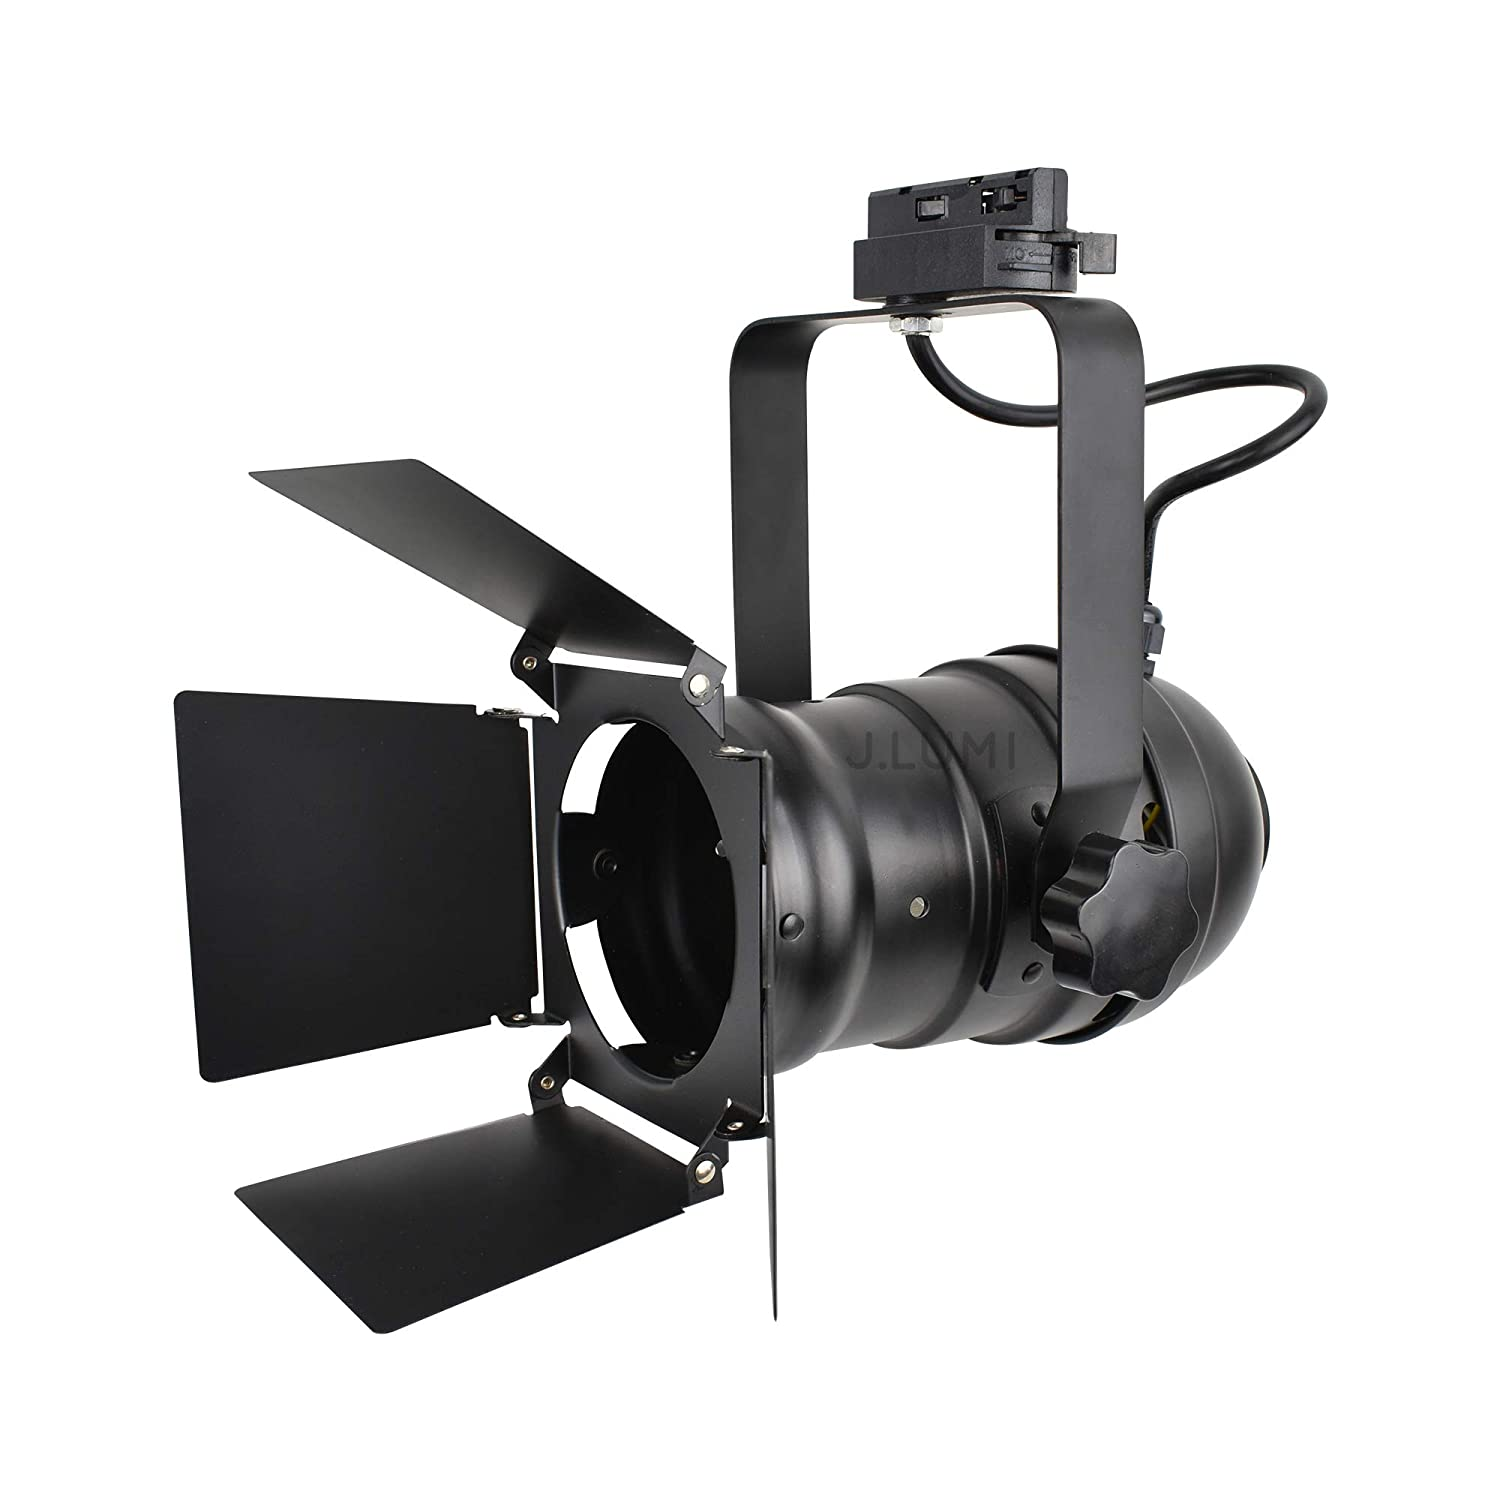 J.LUMI TRK9000 Theater Track Lighting Head, Stage Light with Barn Door Flippers, Black Frost Paint Finish, Vintage Modern Industrial, Uses PAR30, A19 or ST64 Bulb with E26 Base (Bulb not Included)